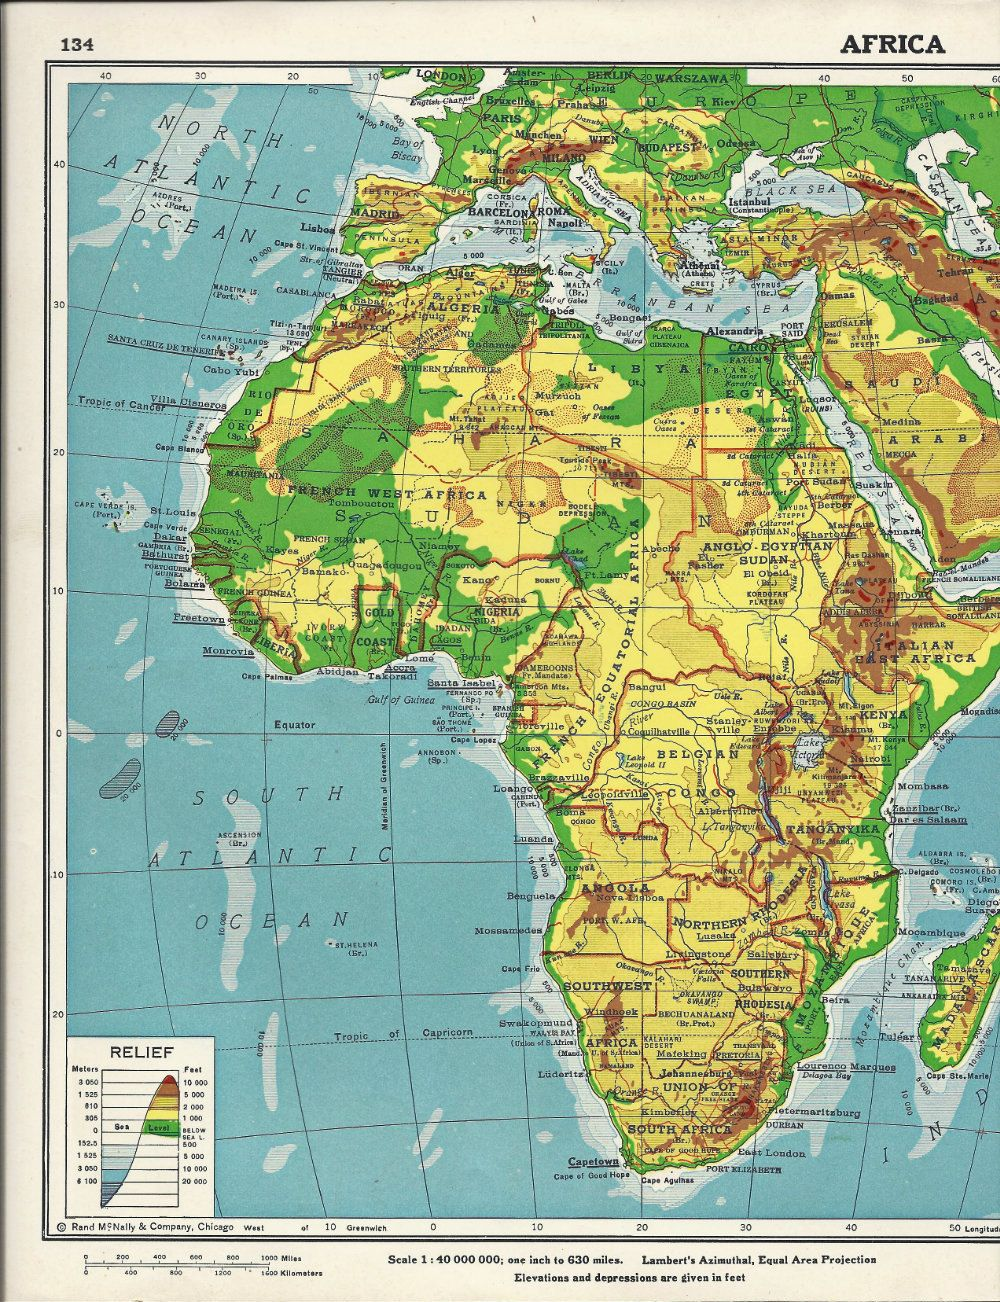 vintage continent of Africa and Europe Railways atlas map page - 1930s